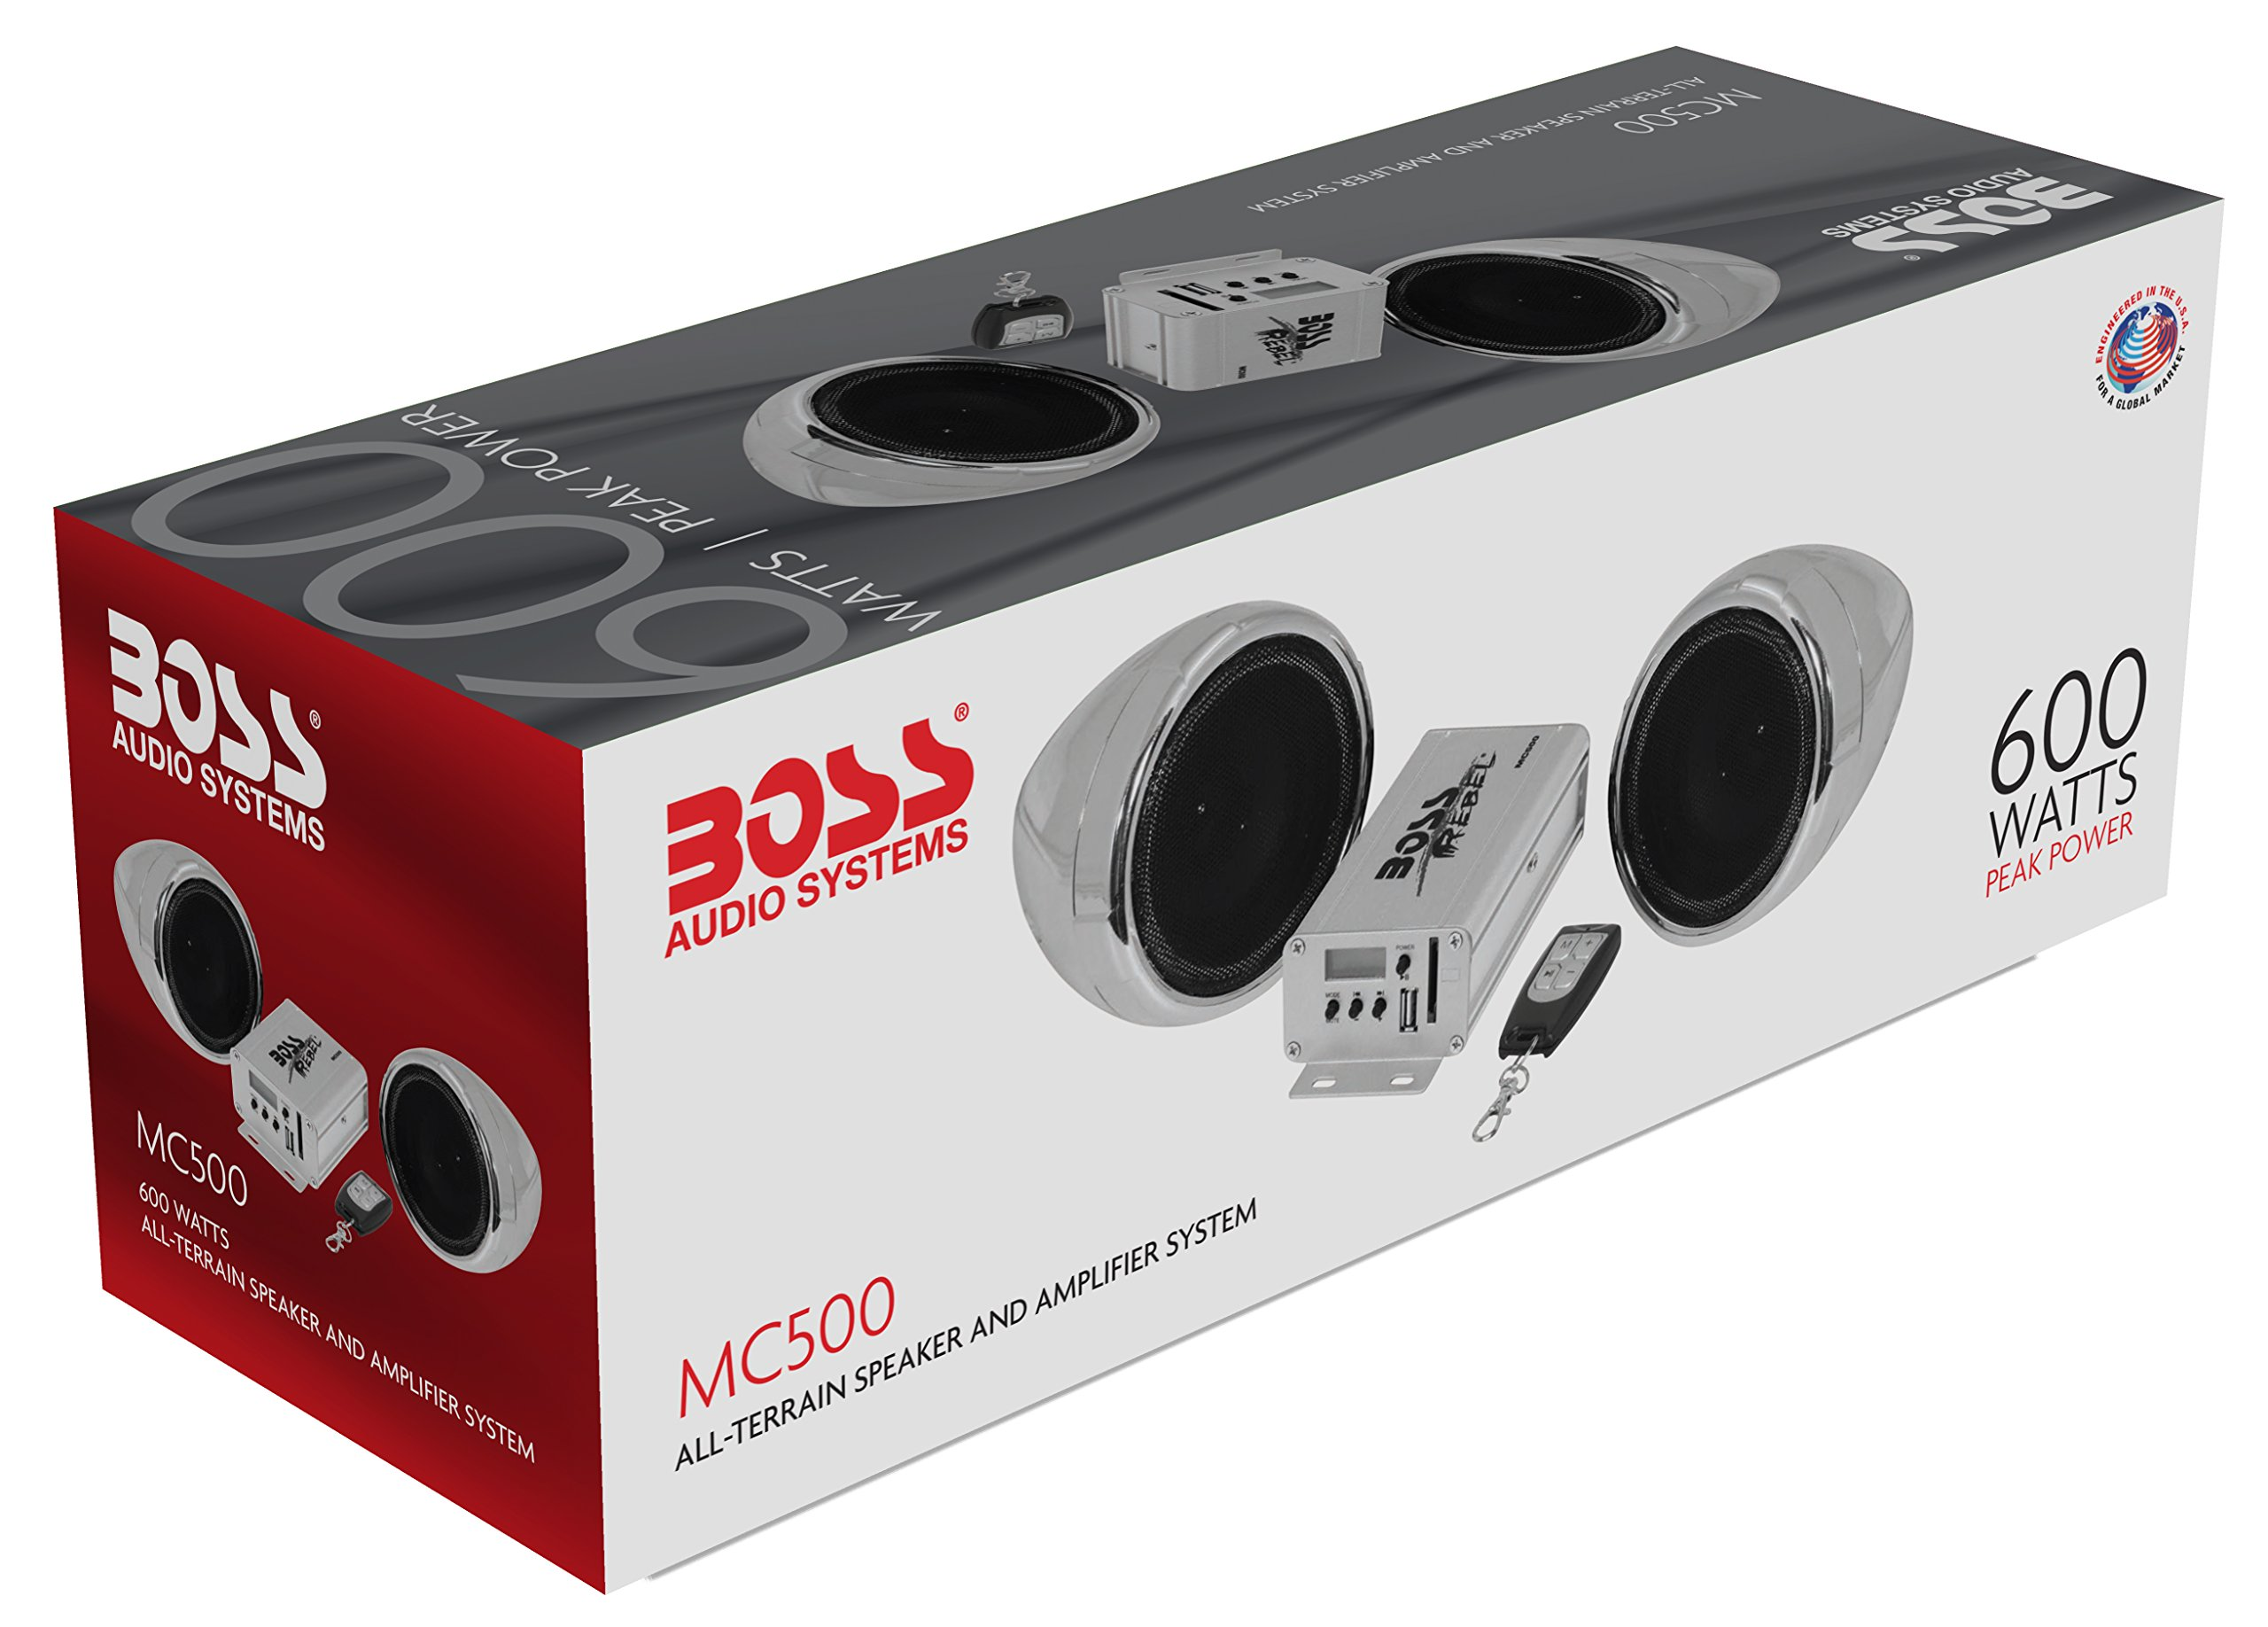 BOSS Audio MC500 All-Terrain, Weatherproof Speaker And Amplifier Sound System, Two 3 Inch Speakers, Compact Amplifier, Multi-Function Remote Control, Ideal For Motorcycles/ATV and 12 Volt Applications by BOSS Audio (Image #7)